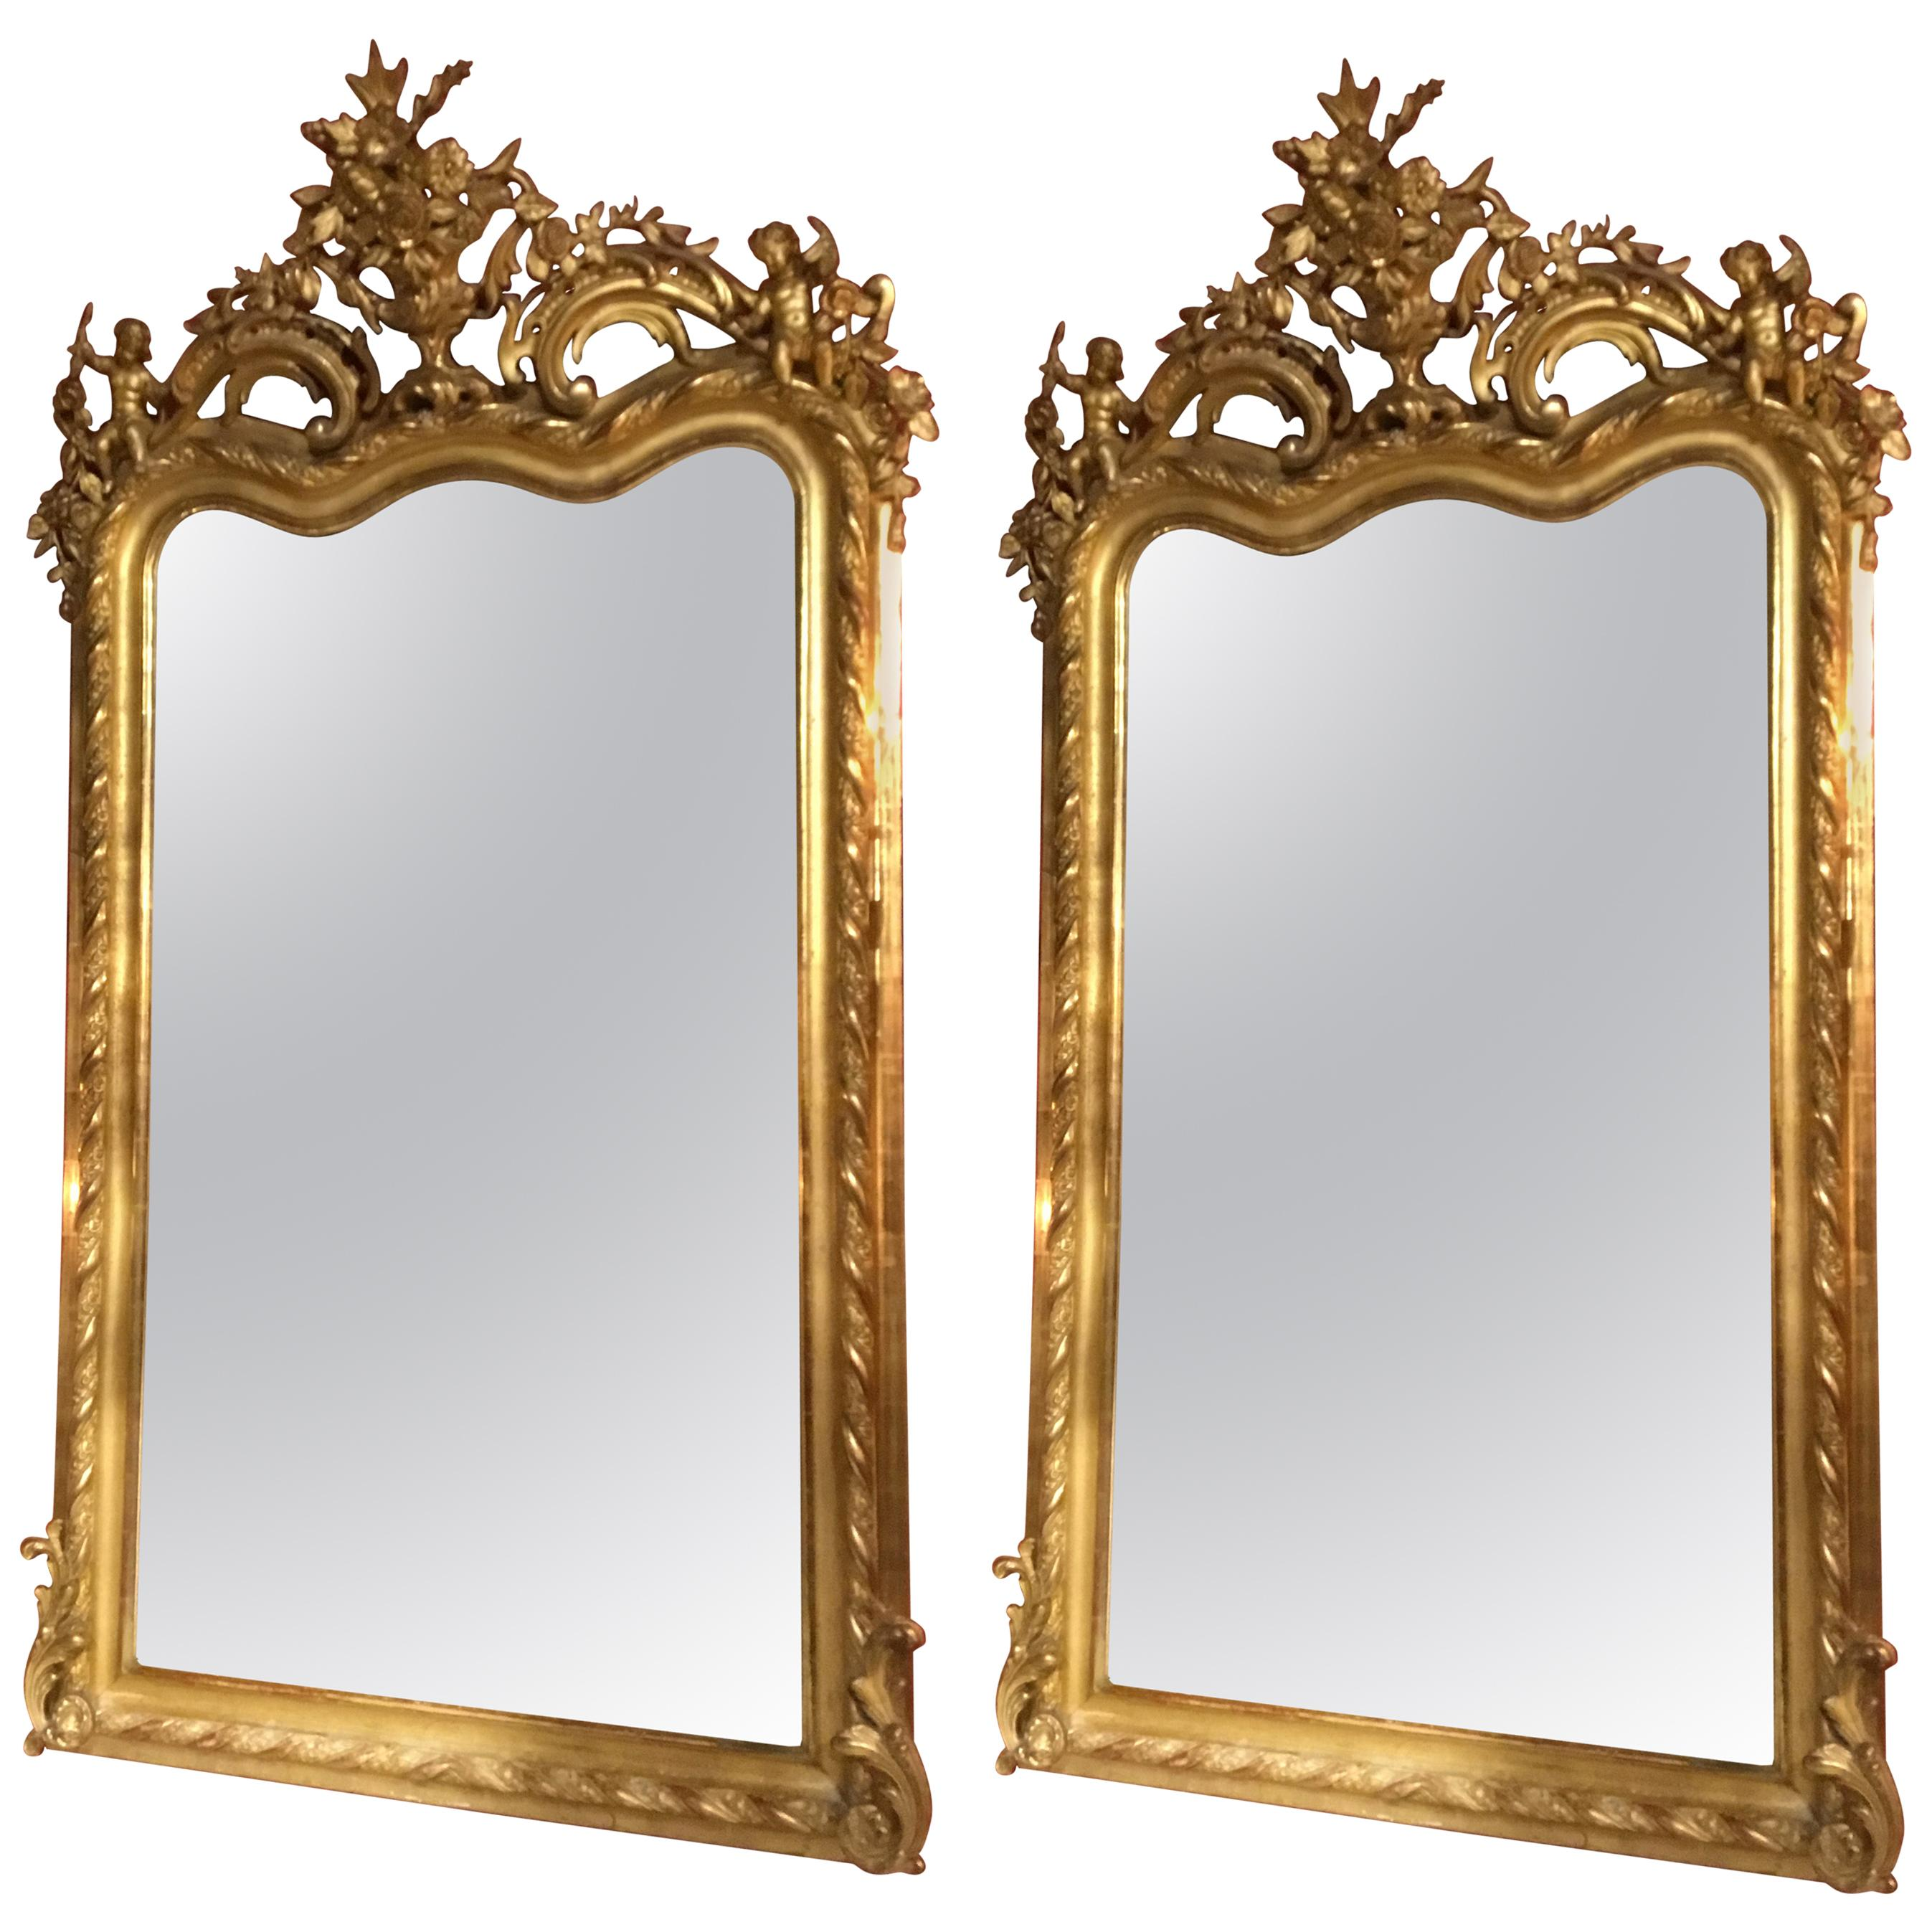 Pair of French Neoclassical Giltwood Mirrors, 19th Century